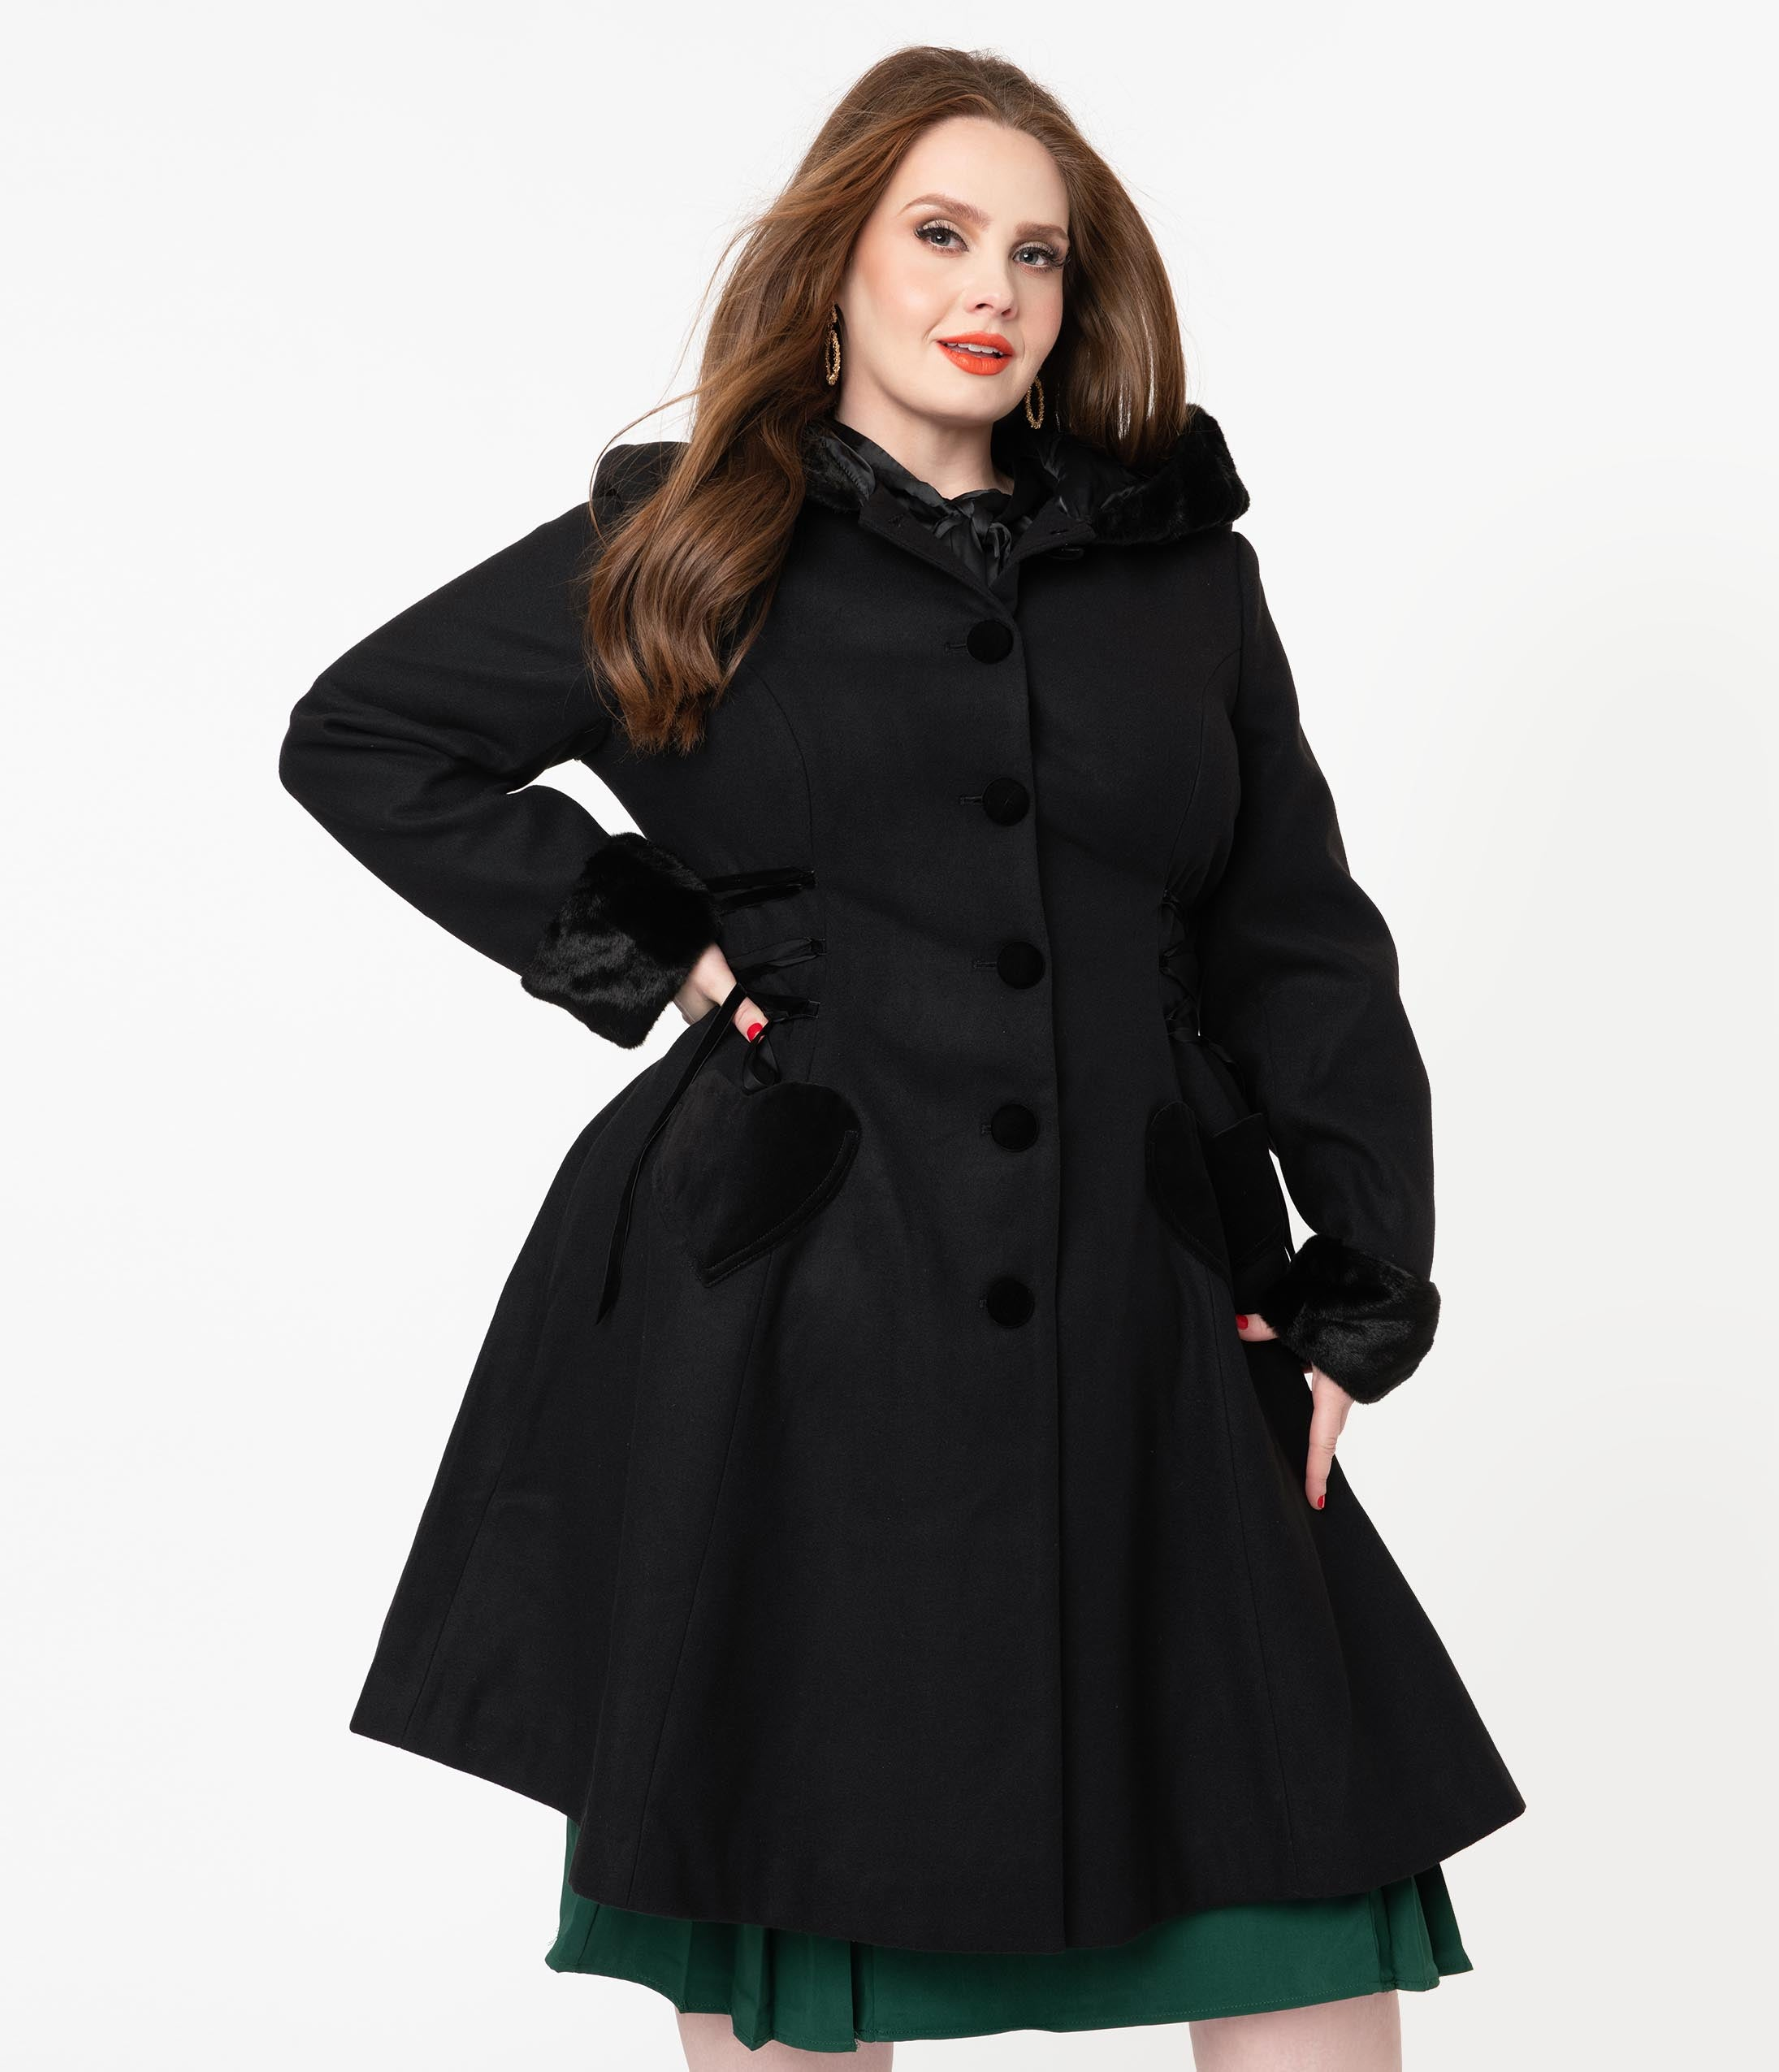 1950s Jackets, Coats, Bolero | Swing, Pin Up, Rockabilly Hell Bunny Plus Size 1950S Black Scarlet Swing Coat $250.00 AT vintagedancer.com